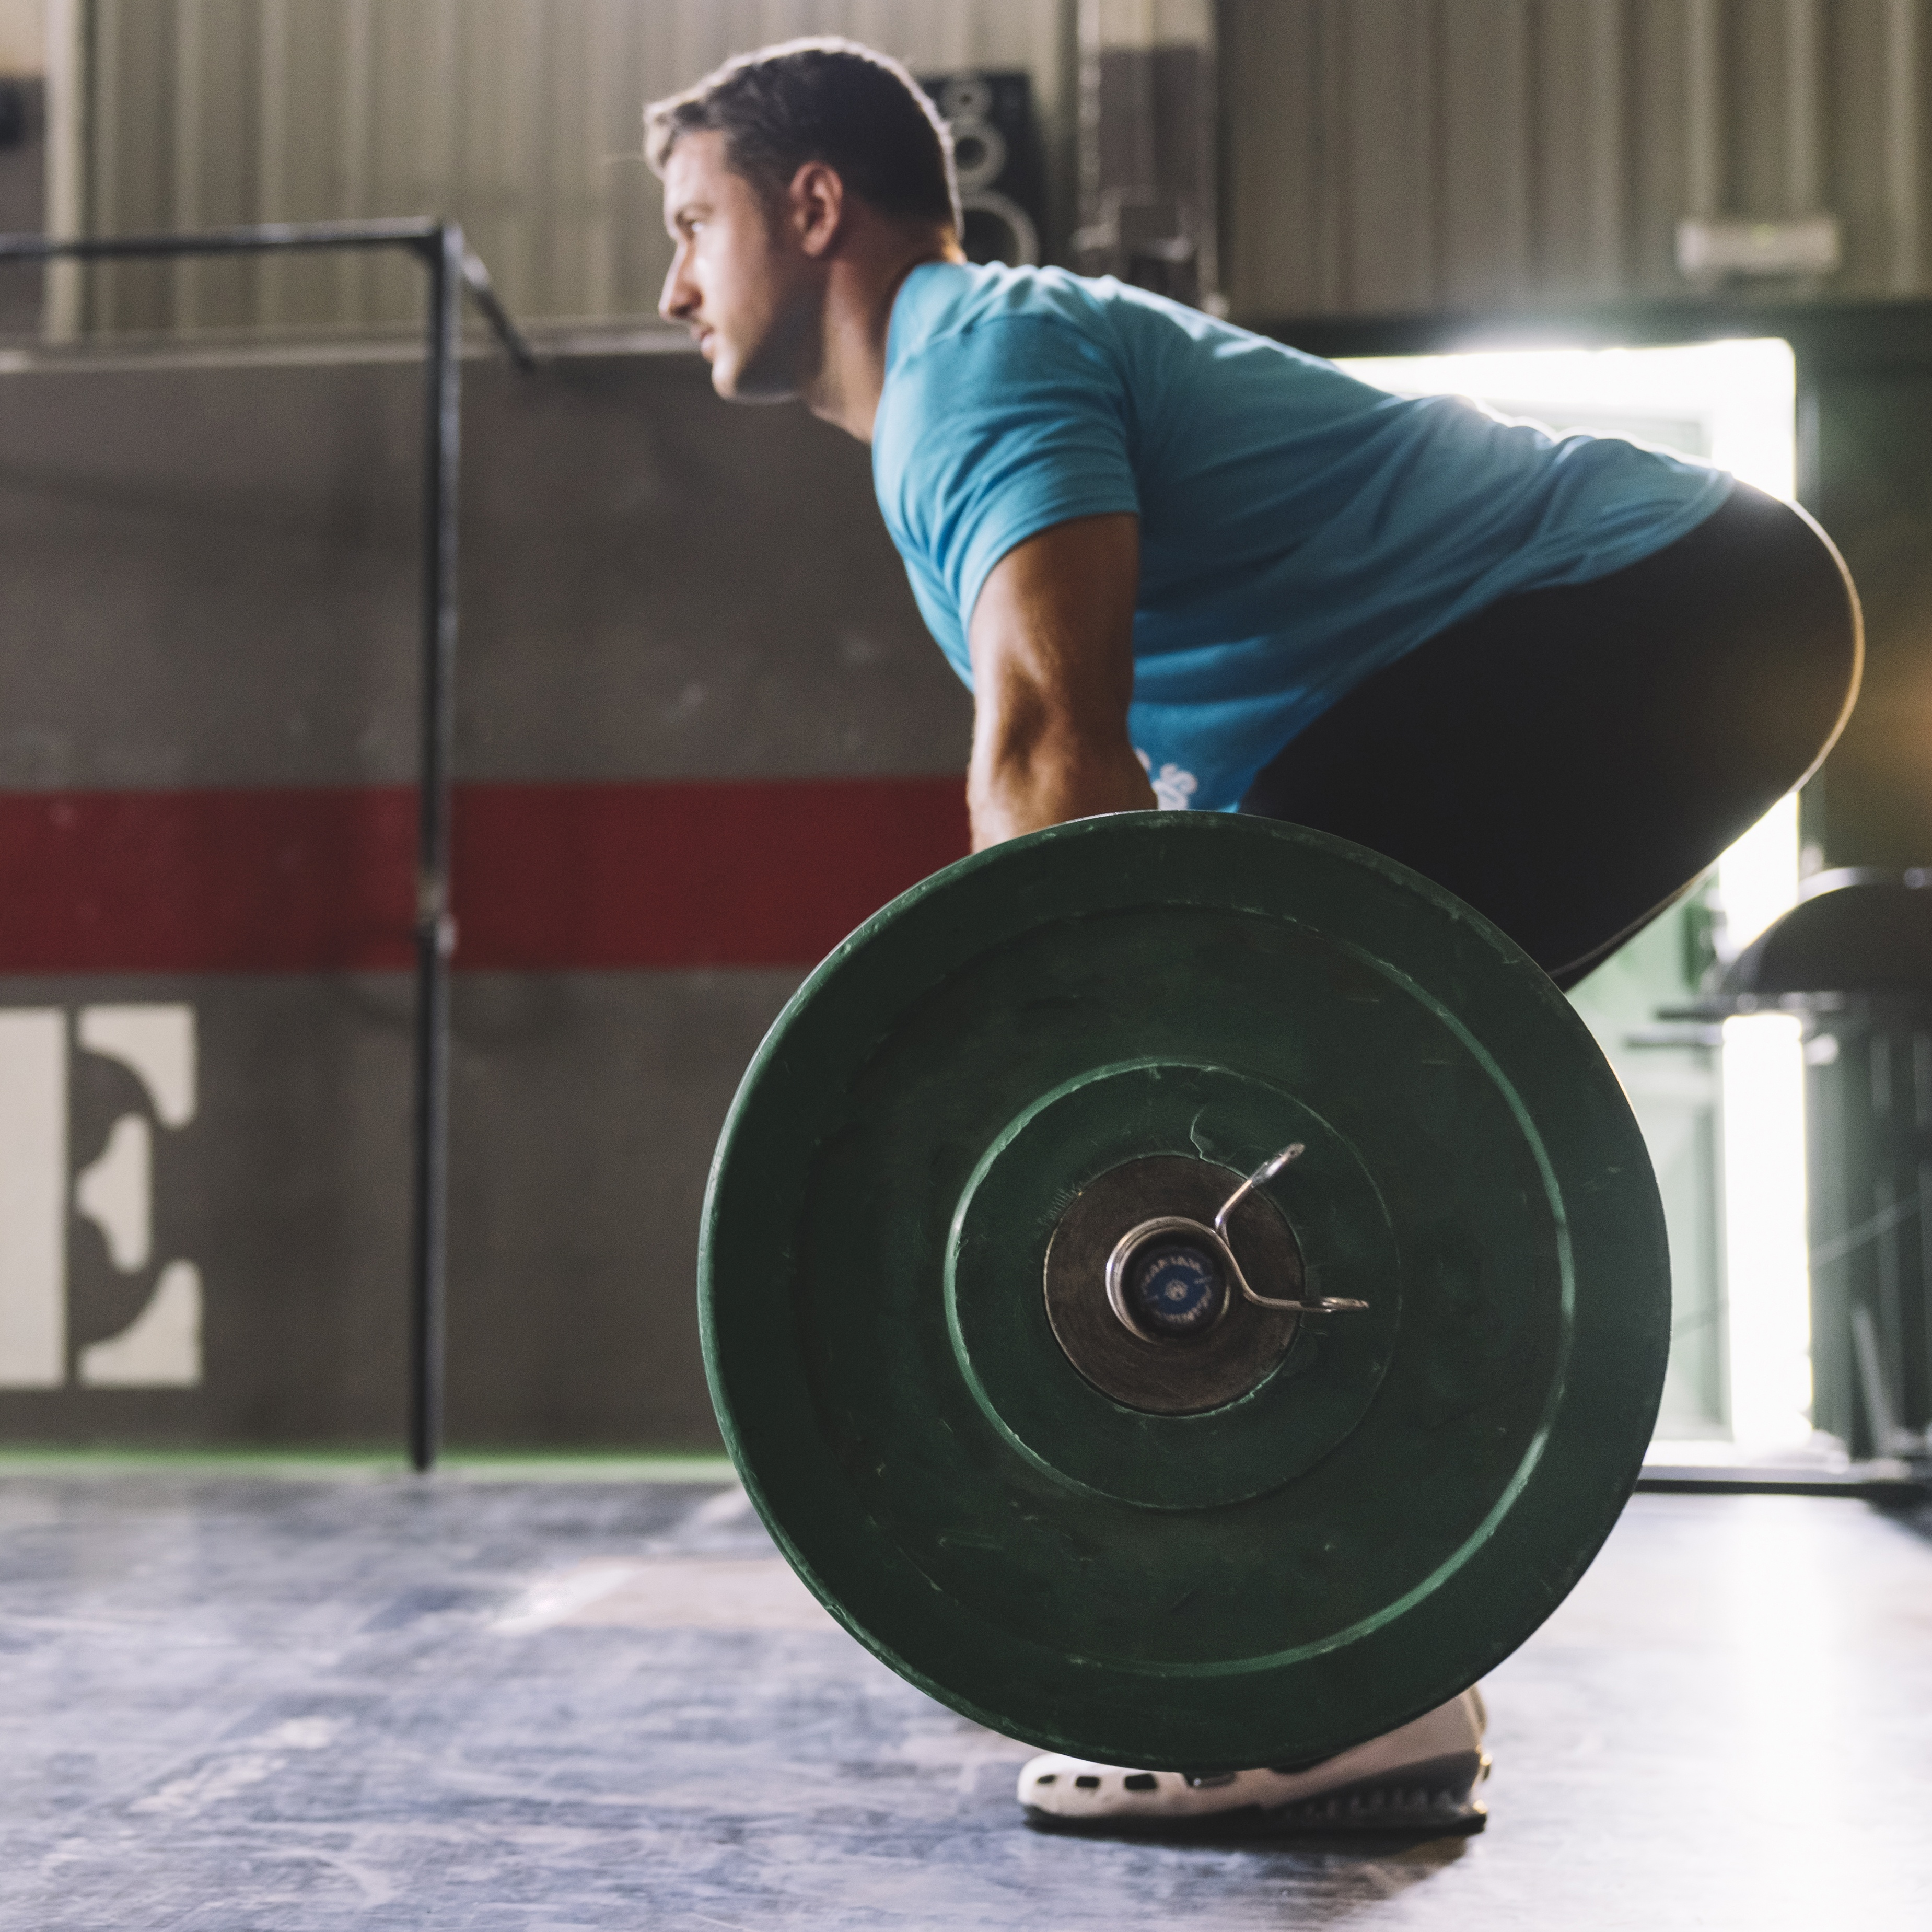 How to train for pure strength instead of hypertrophy - Quora